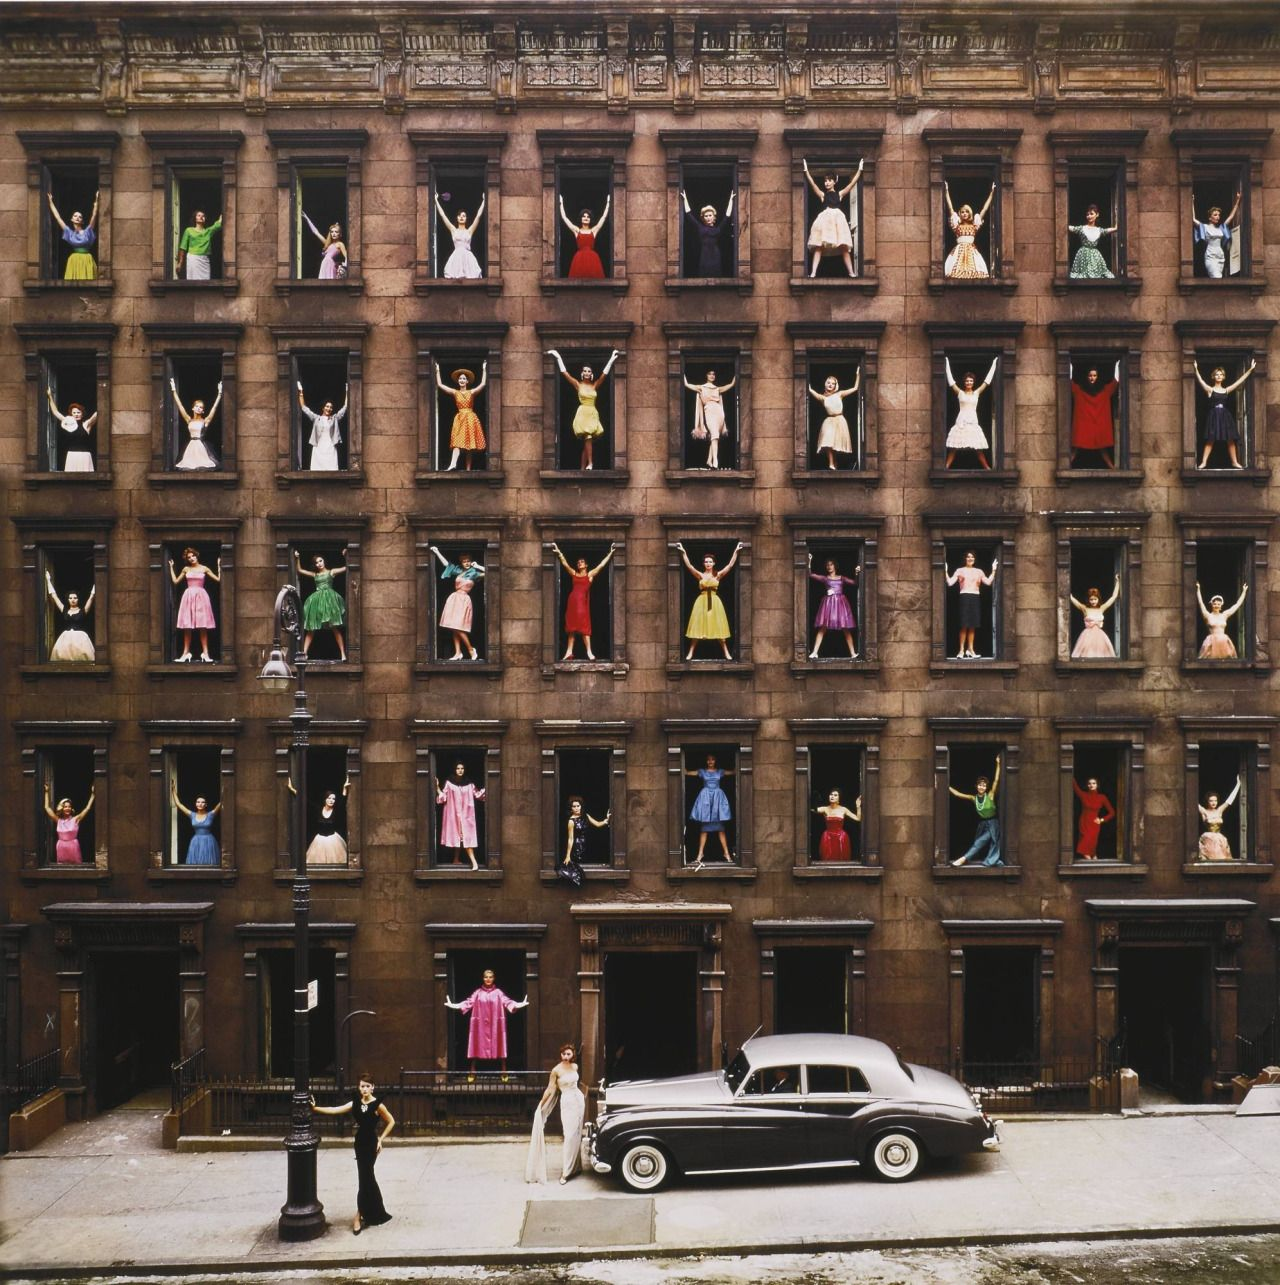 Ormond Gigli, Girls in the Windows, New York City, 1960 via